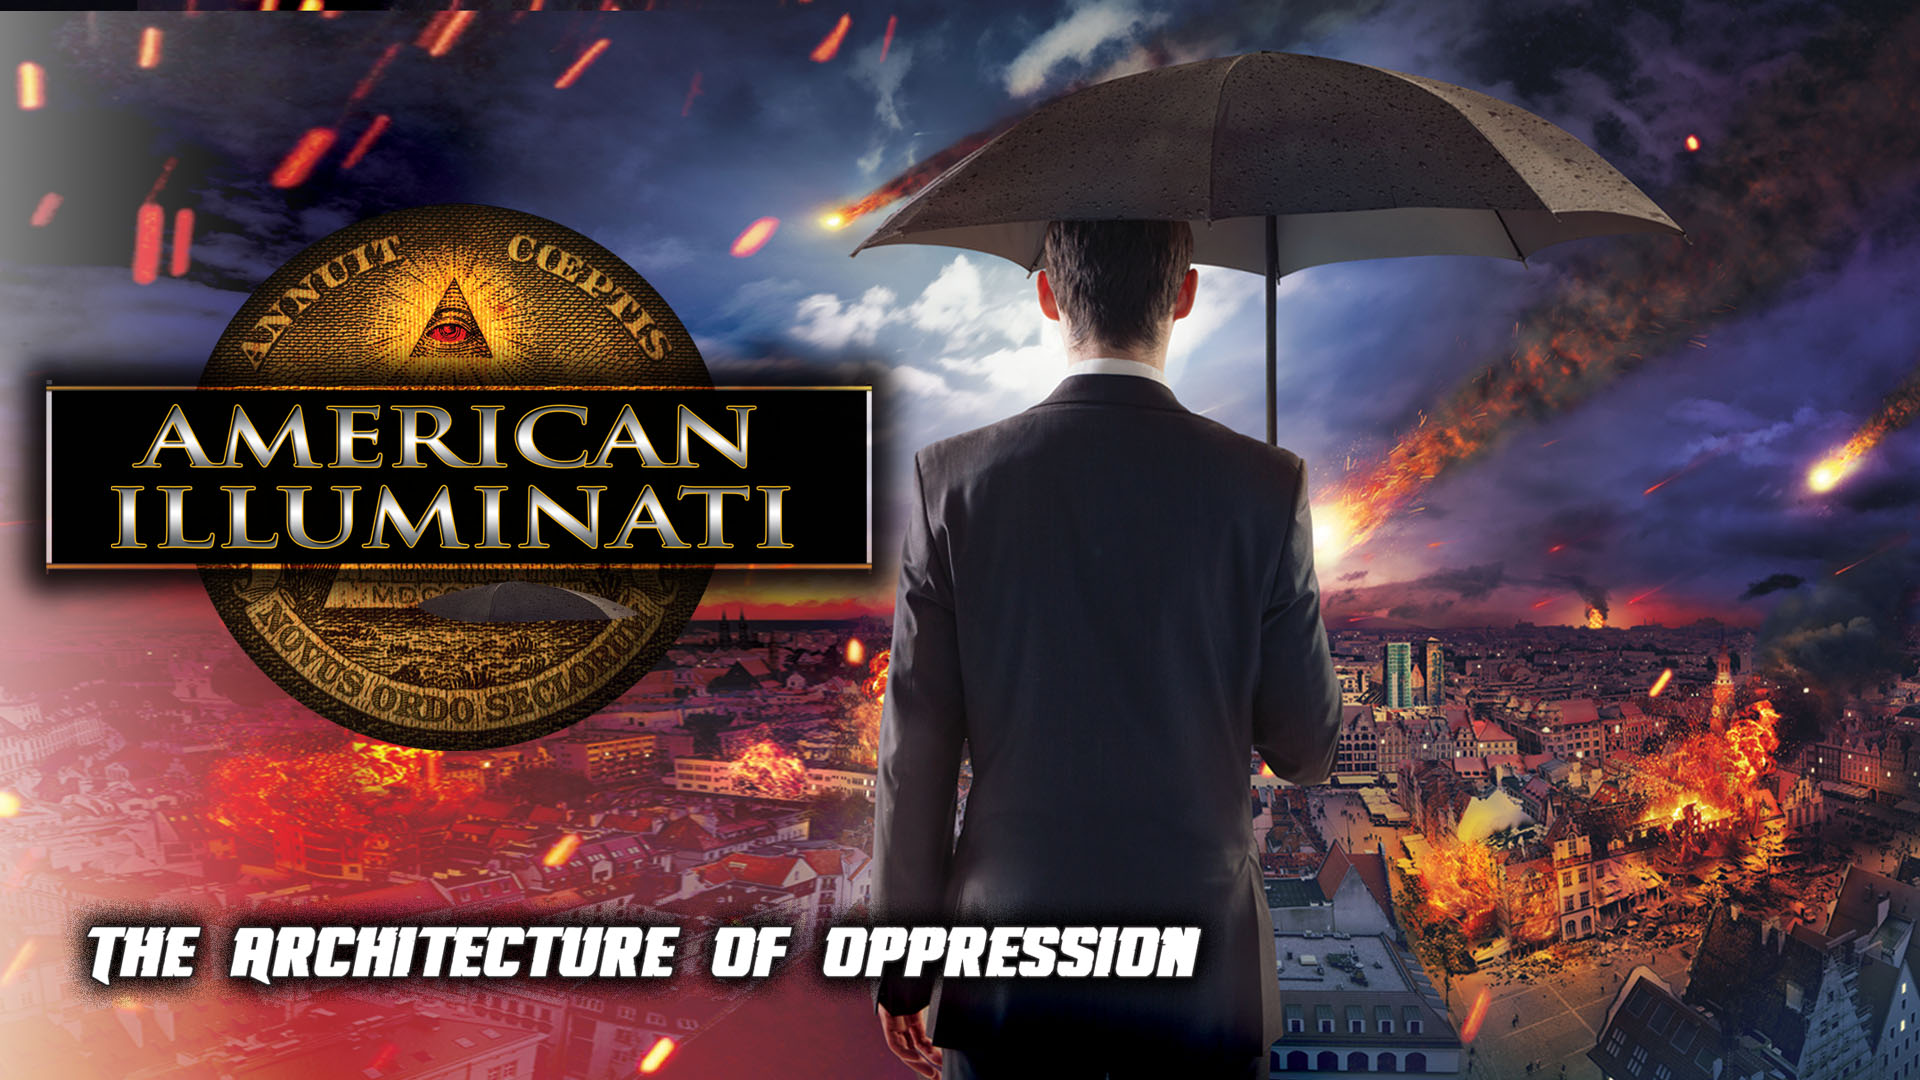 American Illuminati: The Architecture of Oppression